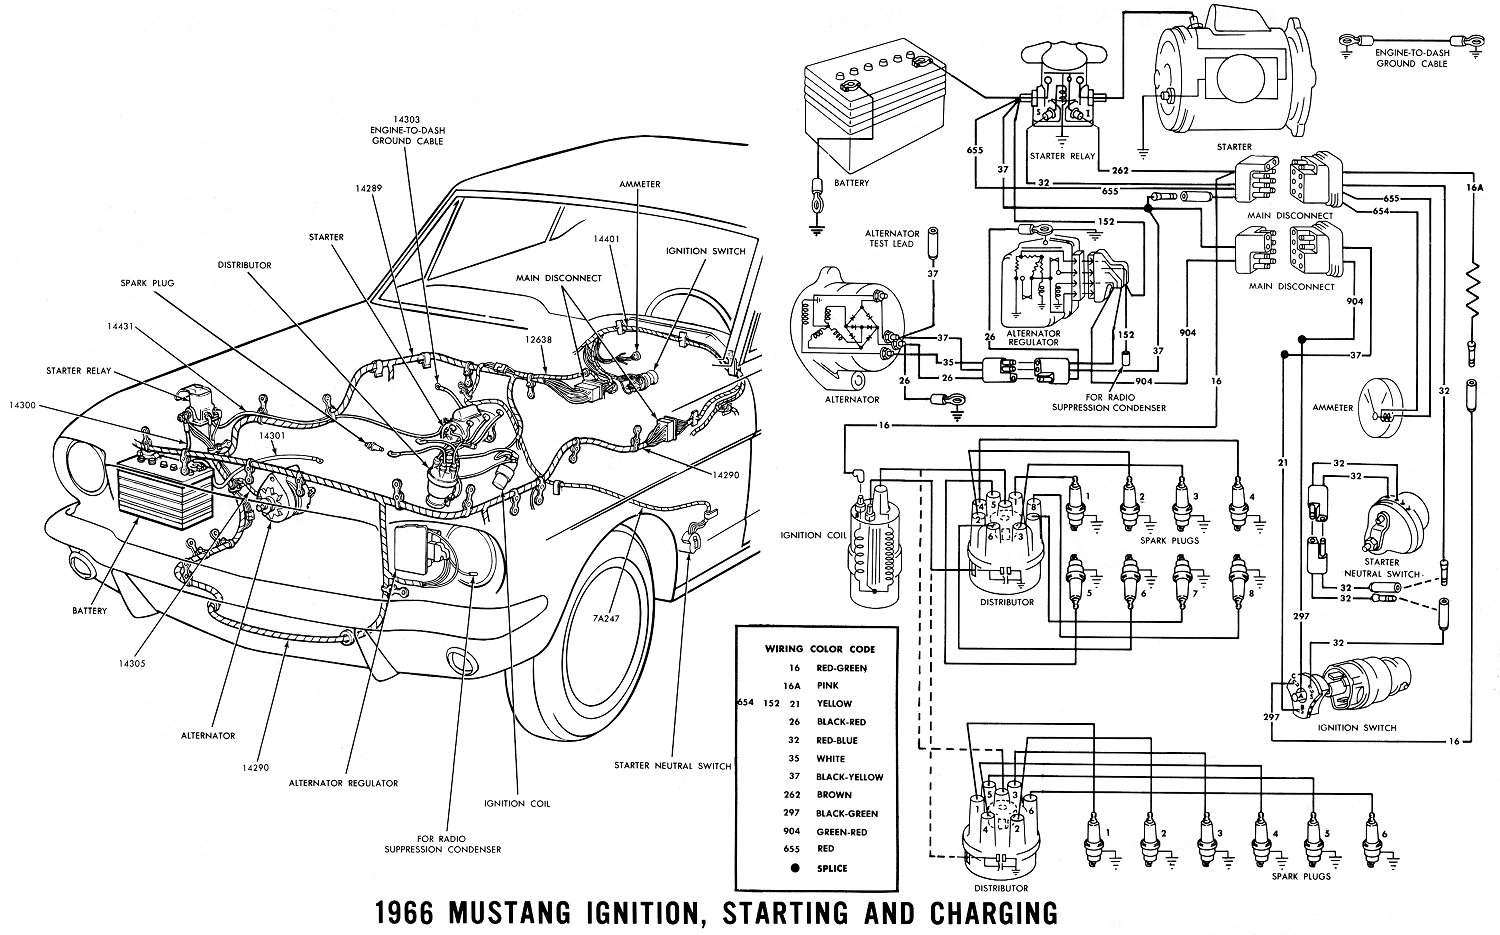 Tech Pump Pressure Switch Wiring Diagram Guide And Troubleshooting Water Further Well 1966 Mustang Diagrams Average Joe Restoration